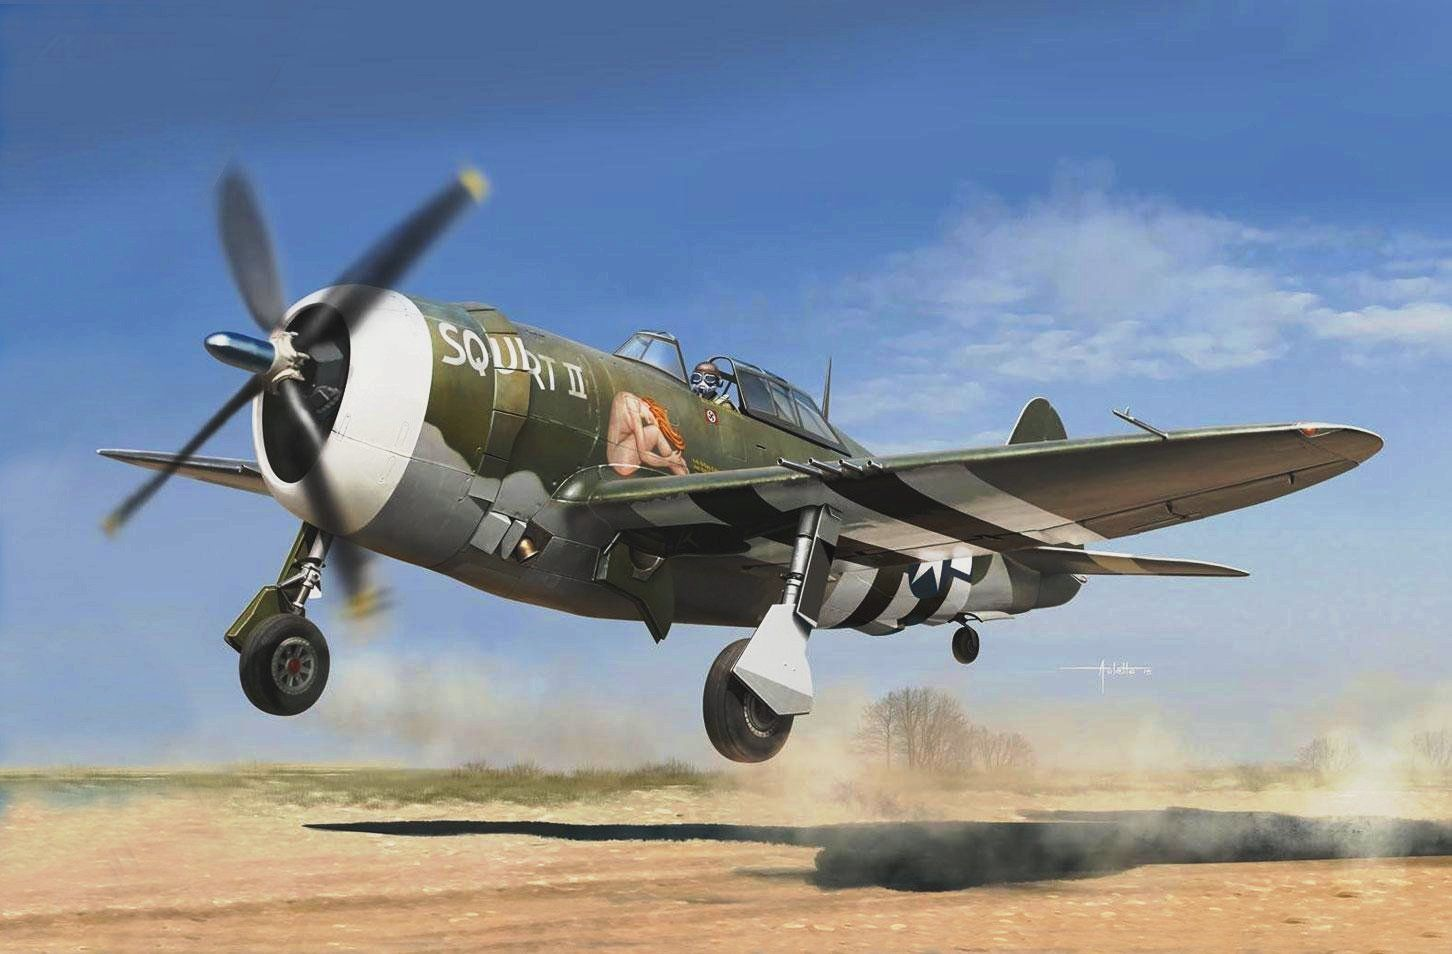 P-47D Thunderbolt 'Squirt II' by Vincenzo Auletta